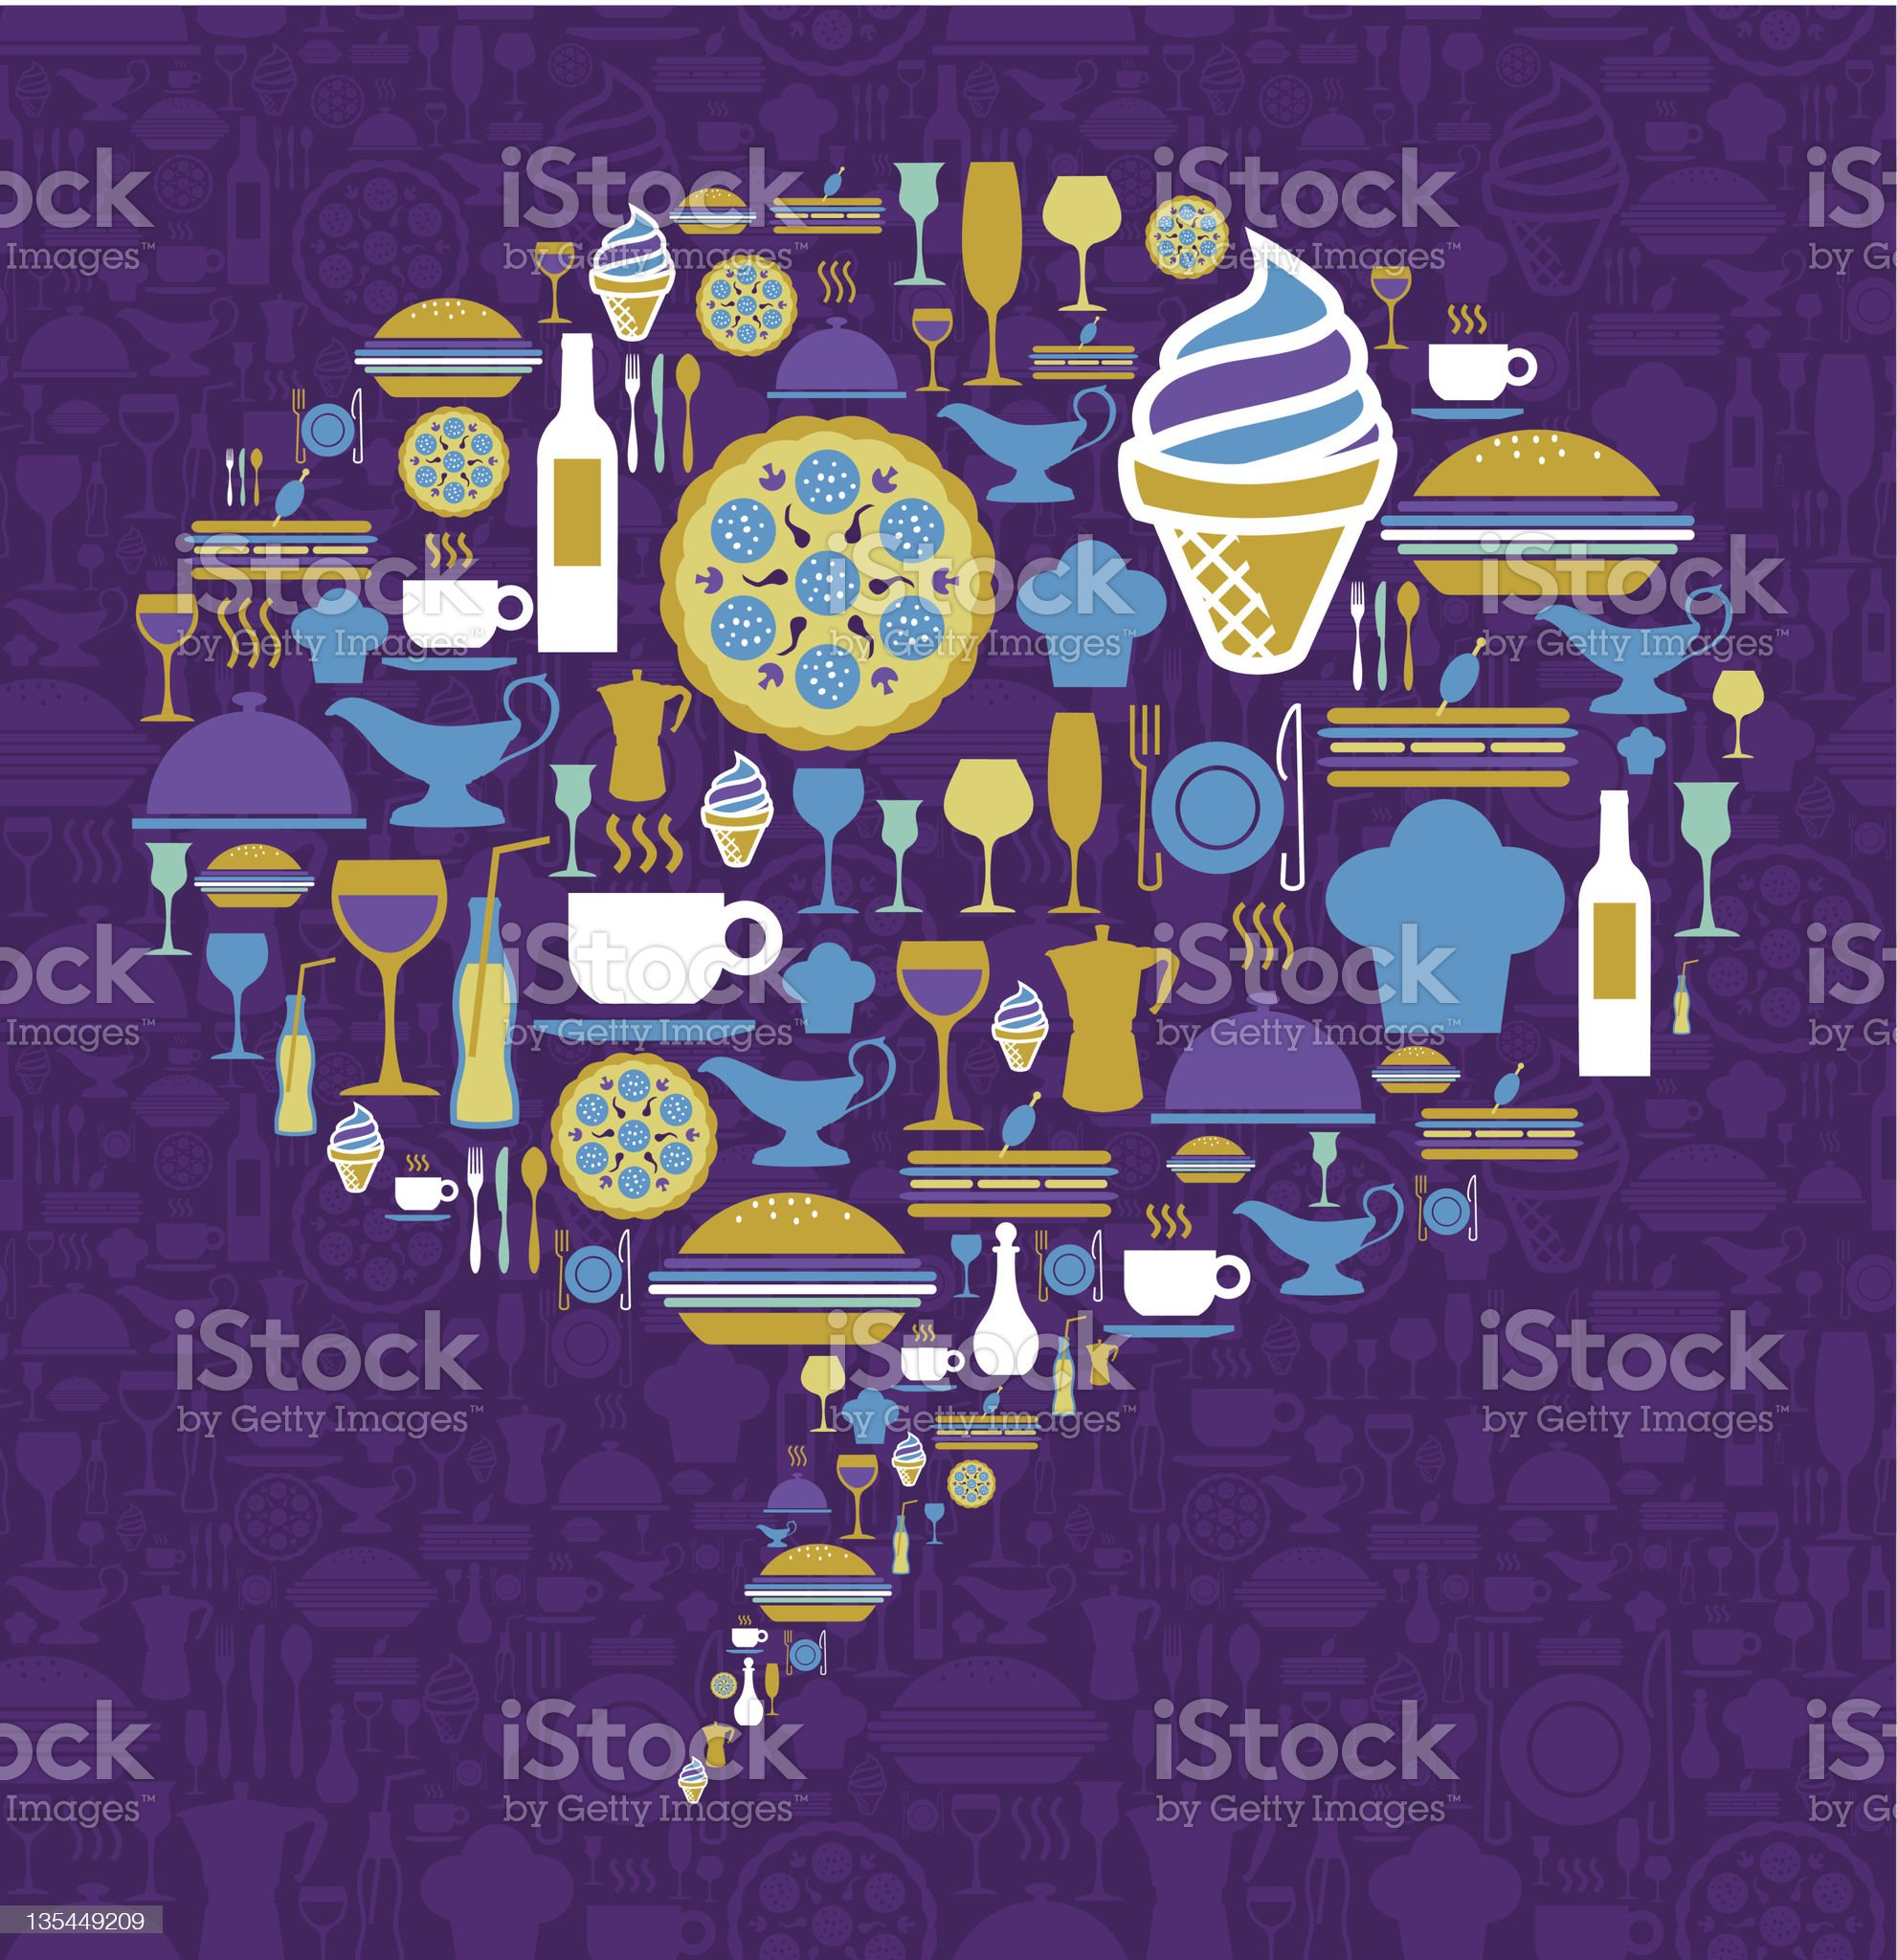 Gourmet icon set in dialogue bubble shape royalty-free stock vector art